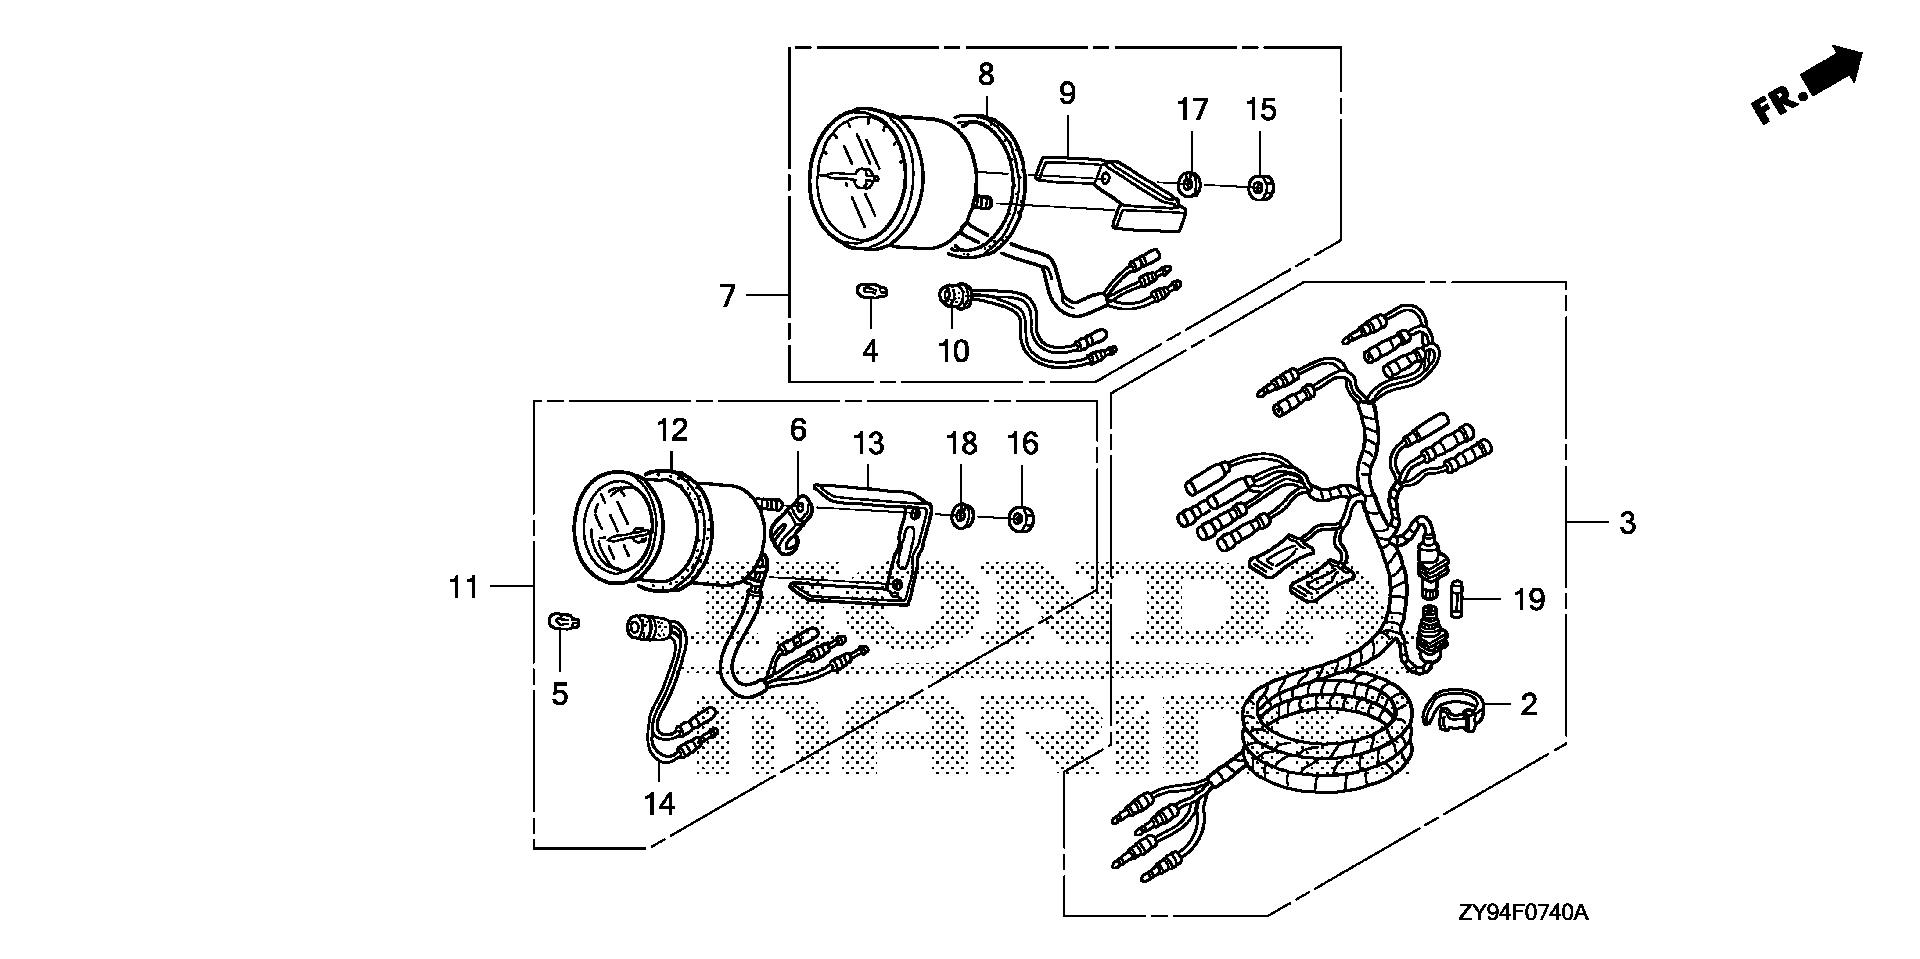 honda trx450r wiring diagram of motor